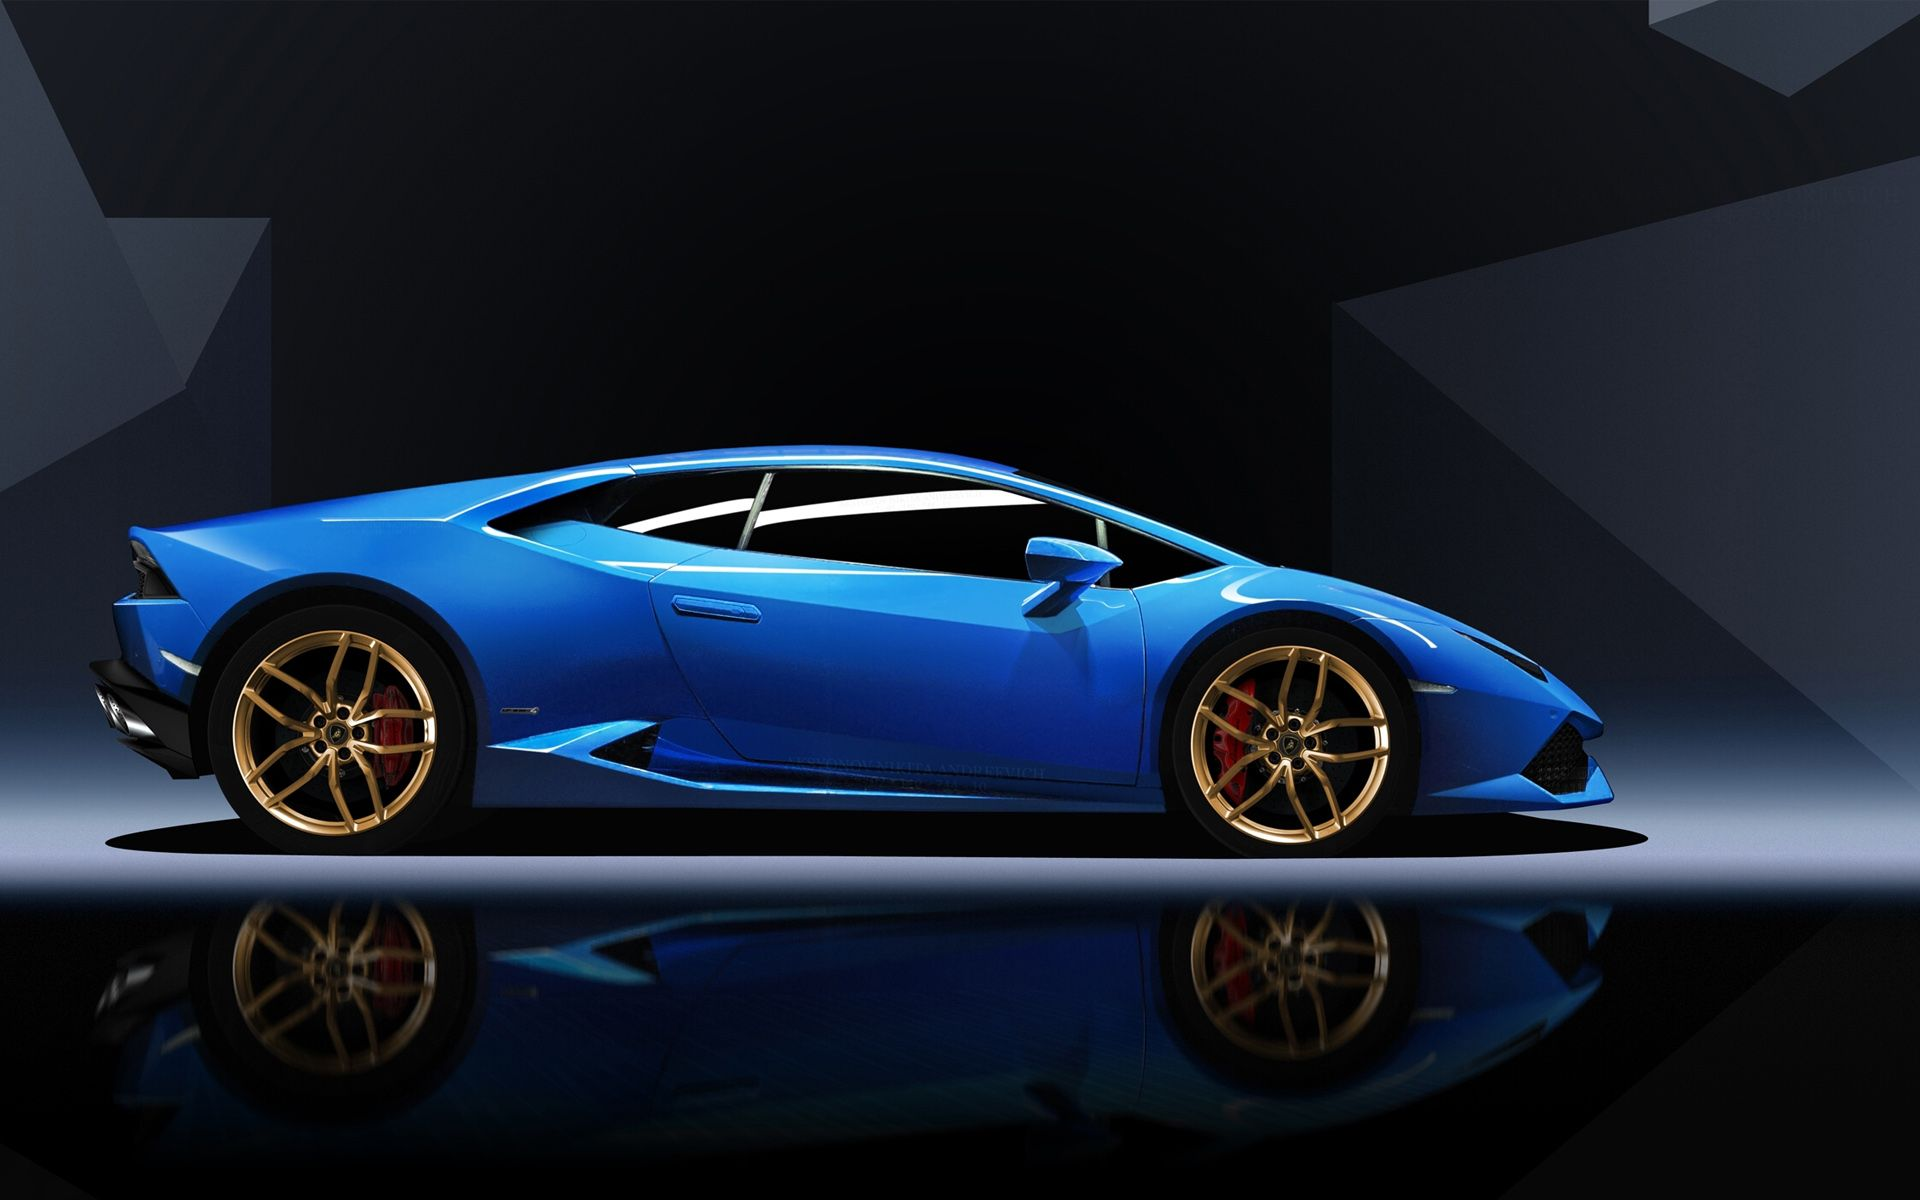 Blue Lambo Wallpapers , Top Free Blue Lambo Backgrounds